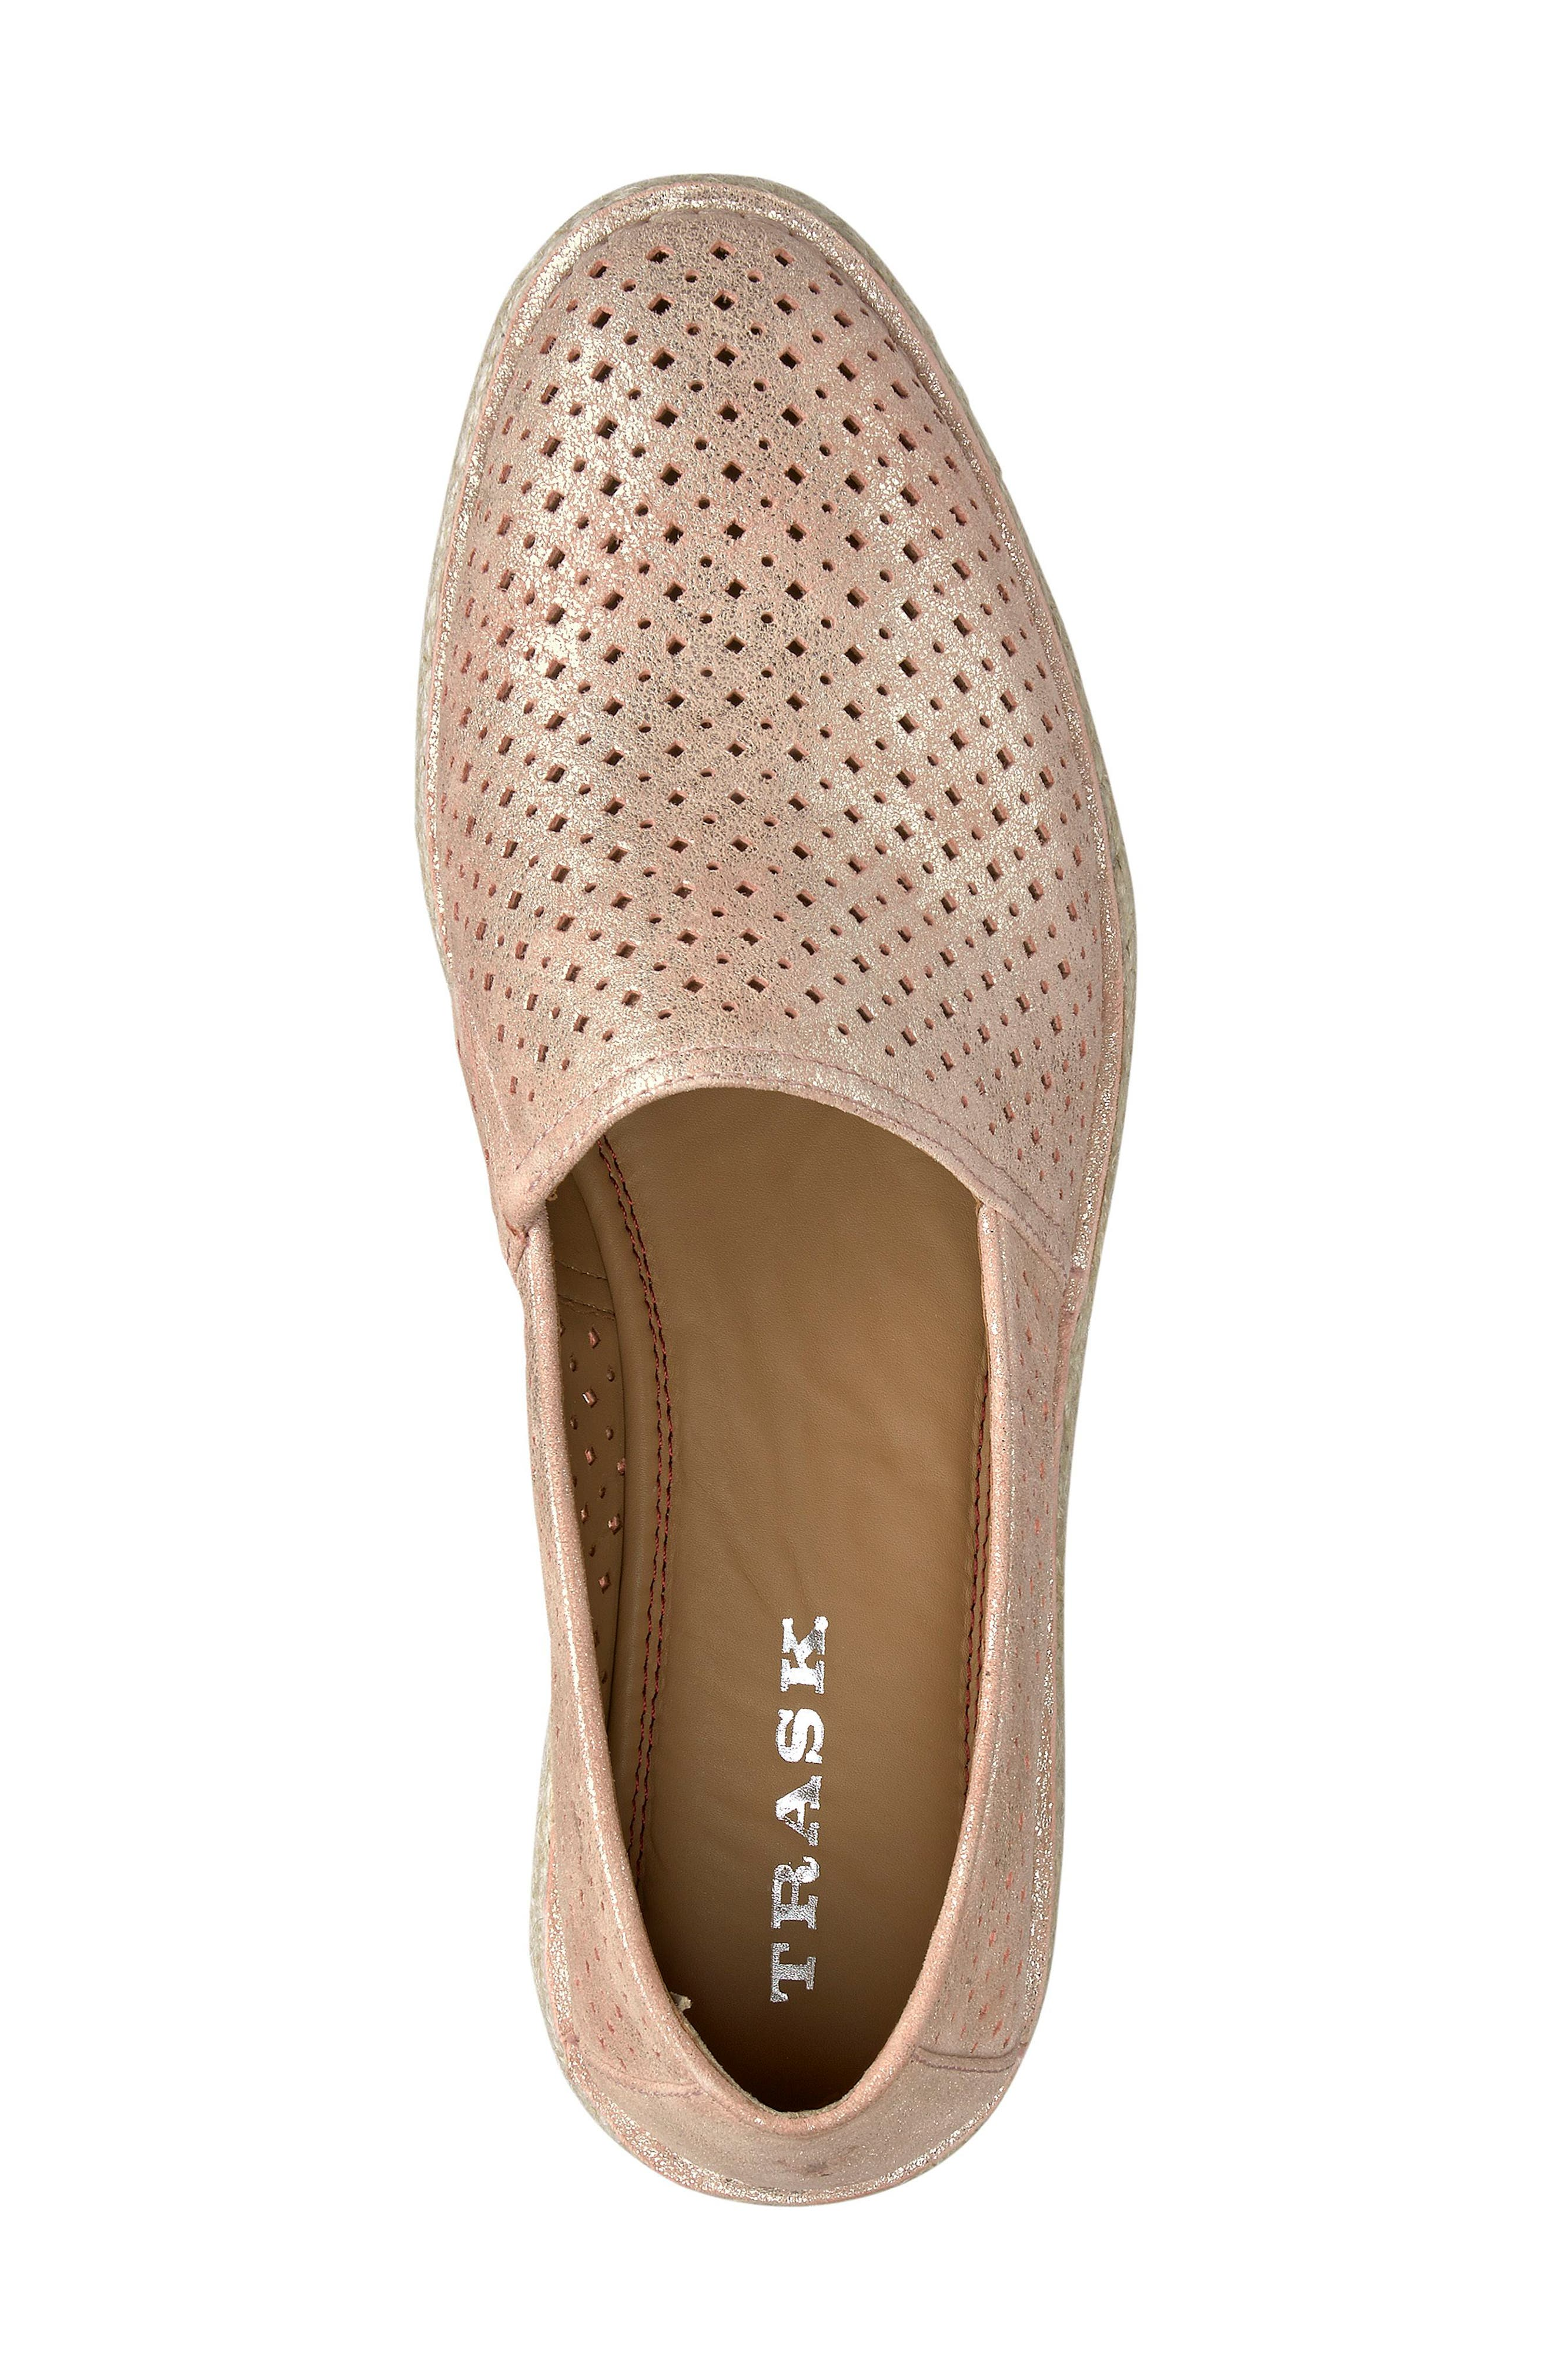 Paige Perforated Flat,                             Alternate thumbnail 5, color,                             Blush Metallic Suede